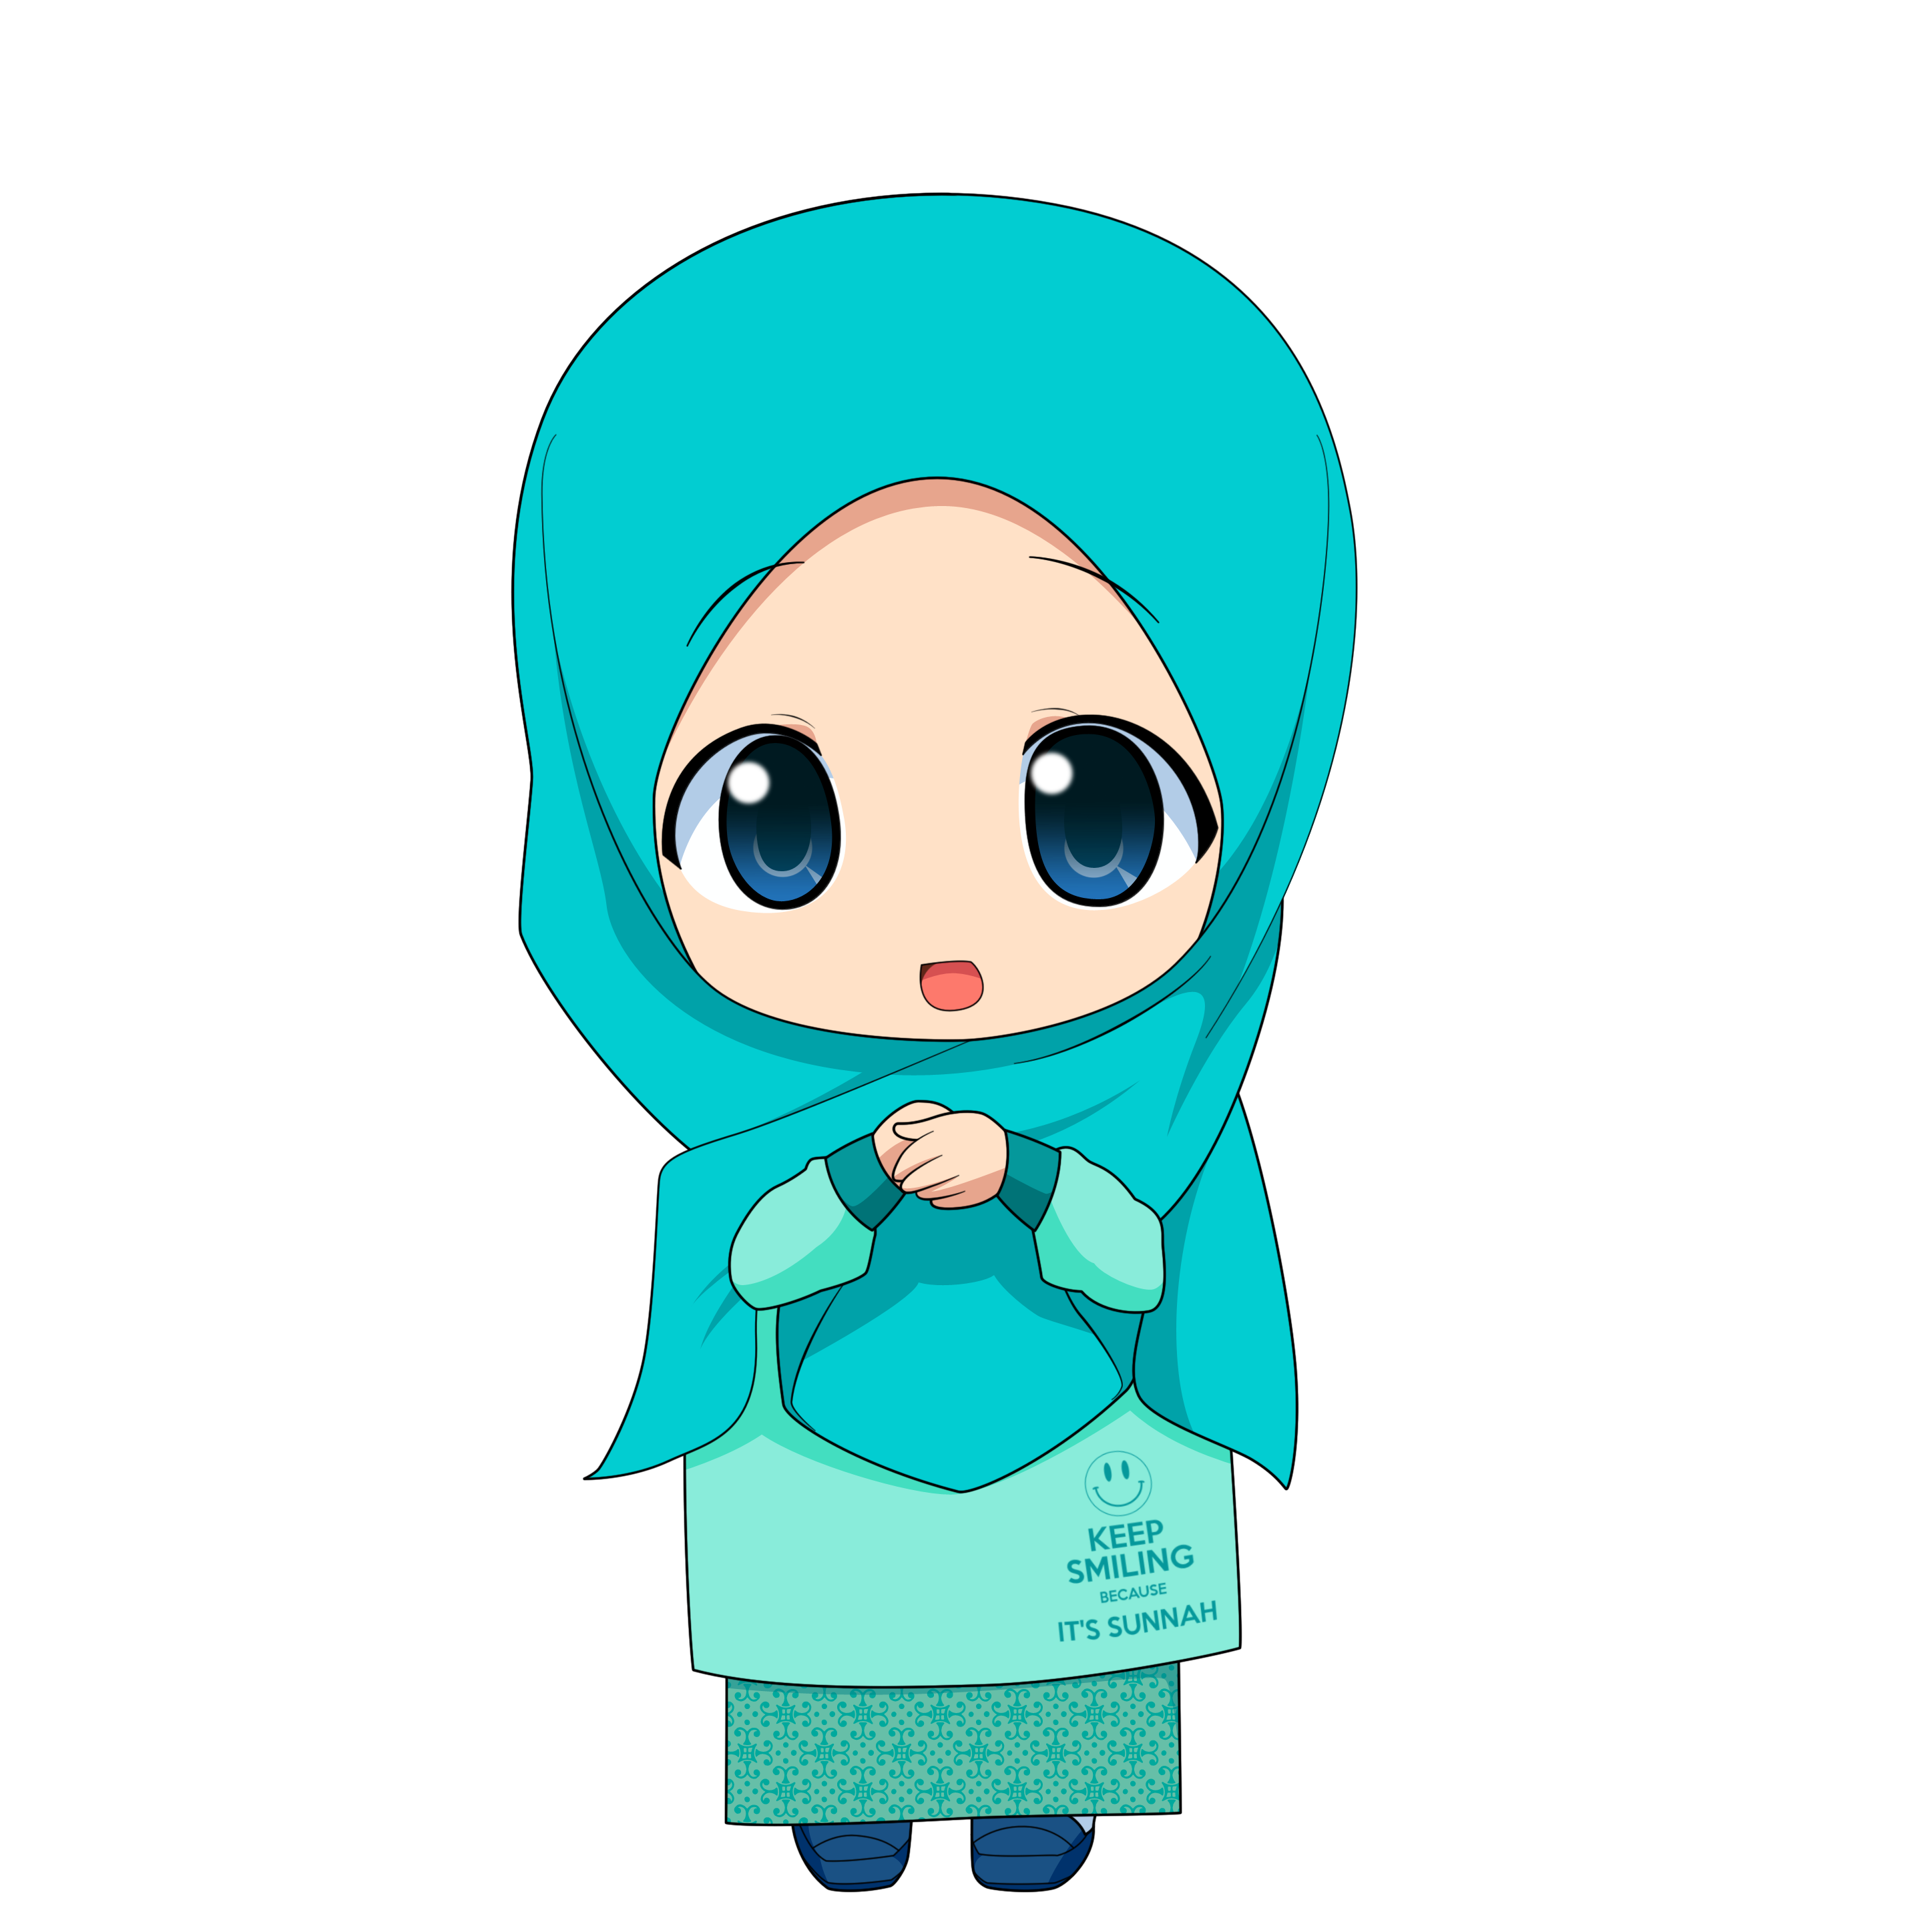 Chibi Muslimah 2 by on DeviantArt